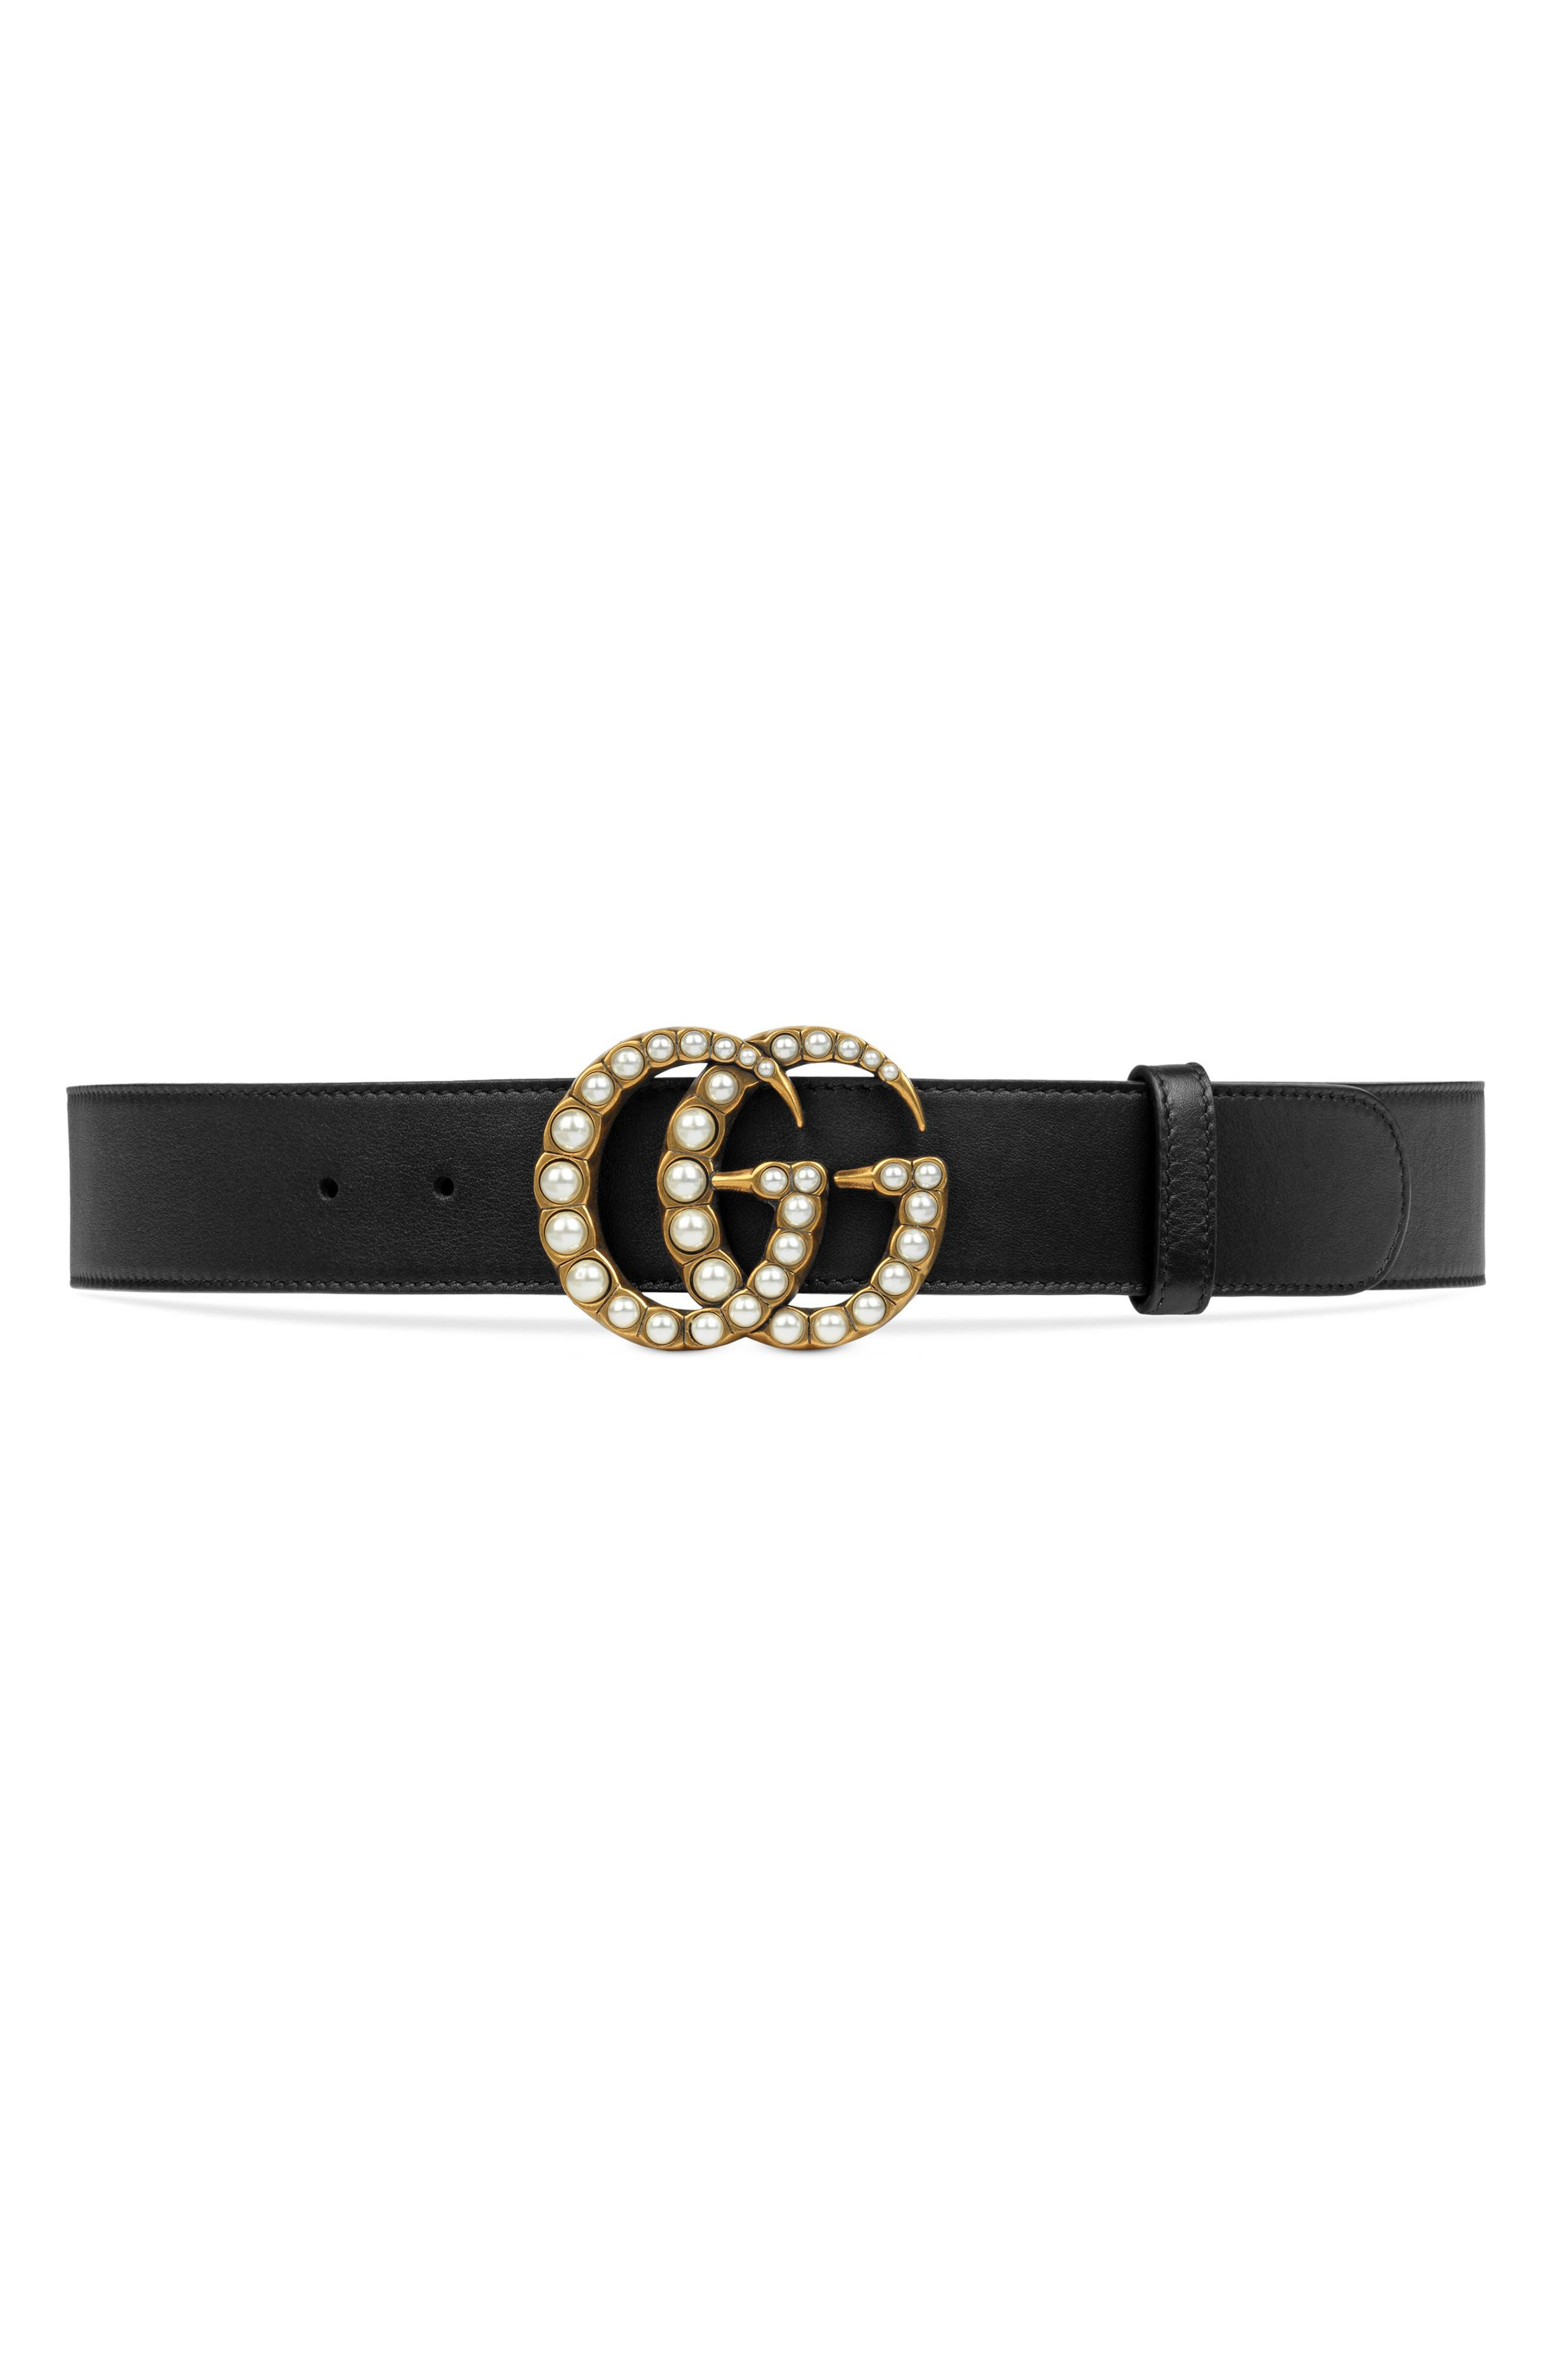 GUCCI, Imitation Pearl Double-G Leather Belt, Main thumbnail 1, color, DLX1T 9094 NERO/CREAM